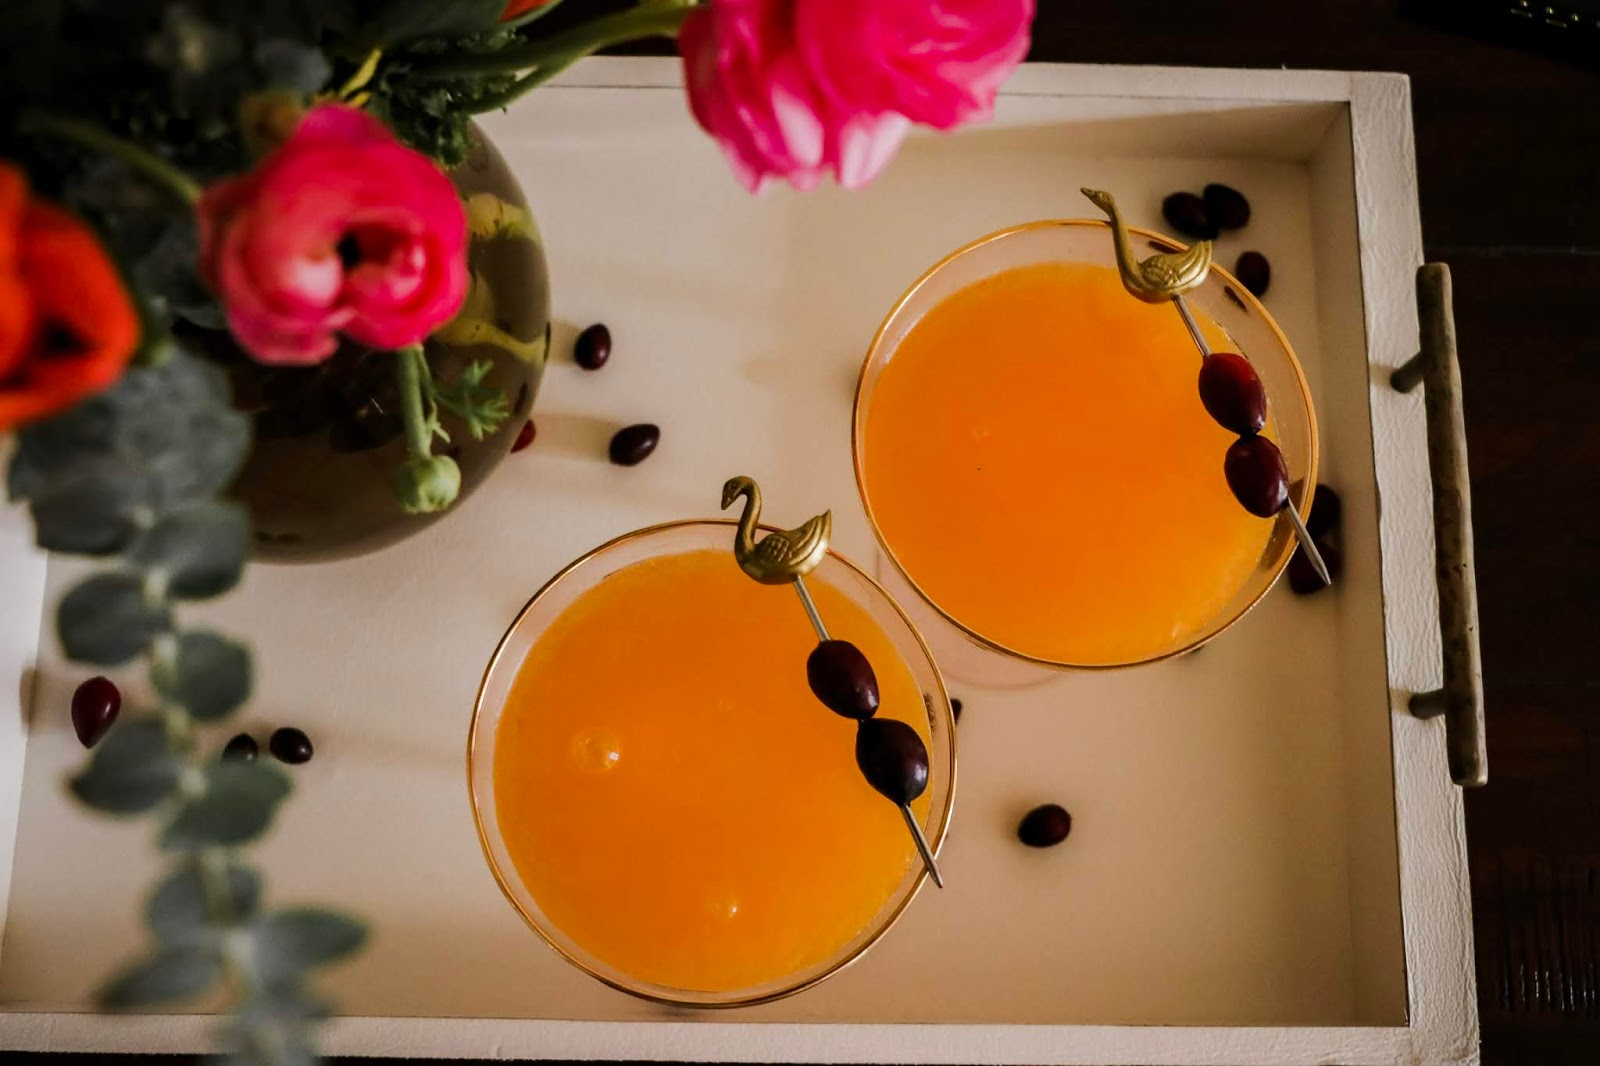 holiday drink, paloma cocktail, citrus based cocktail, entertaining drink, drink ideas for the holidays